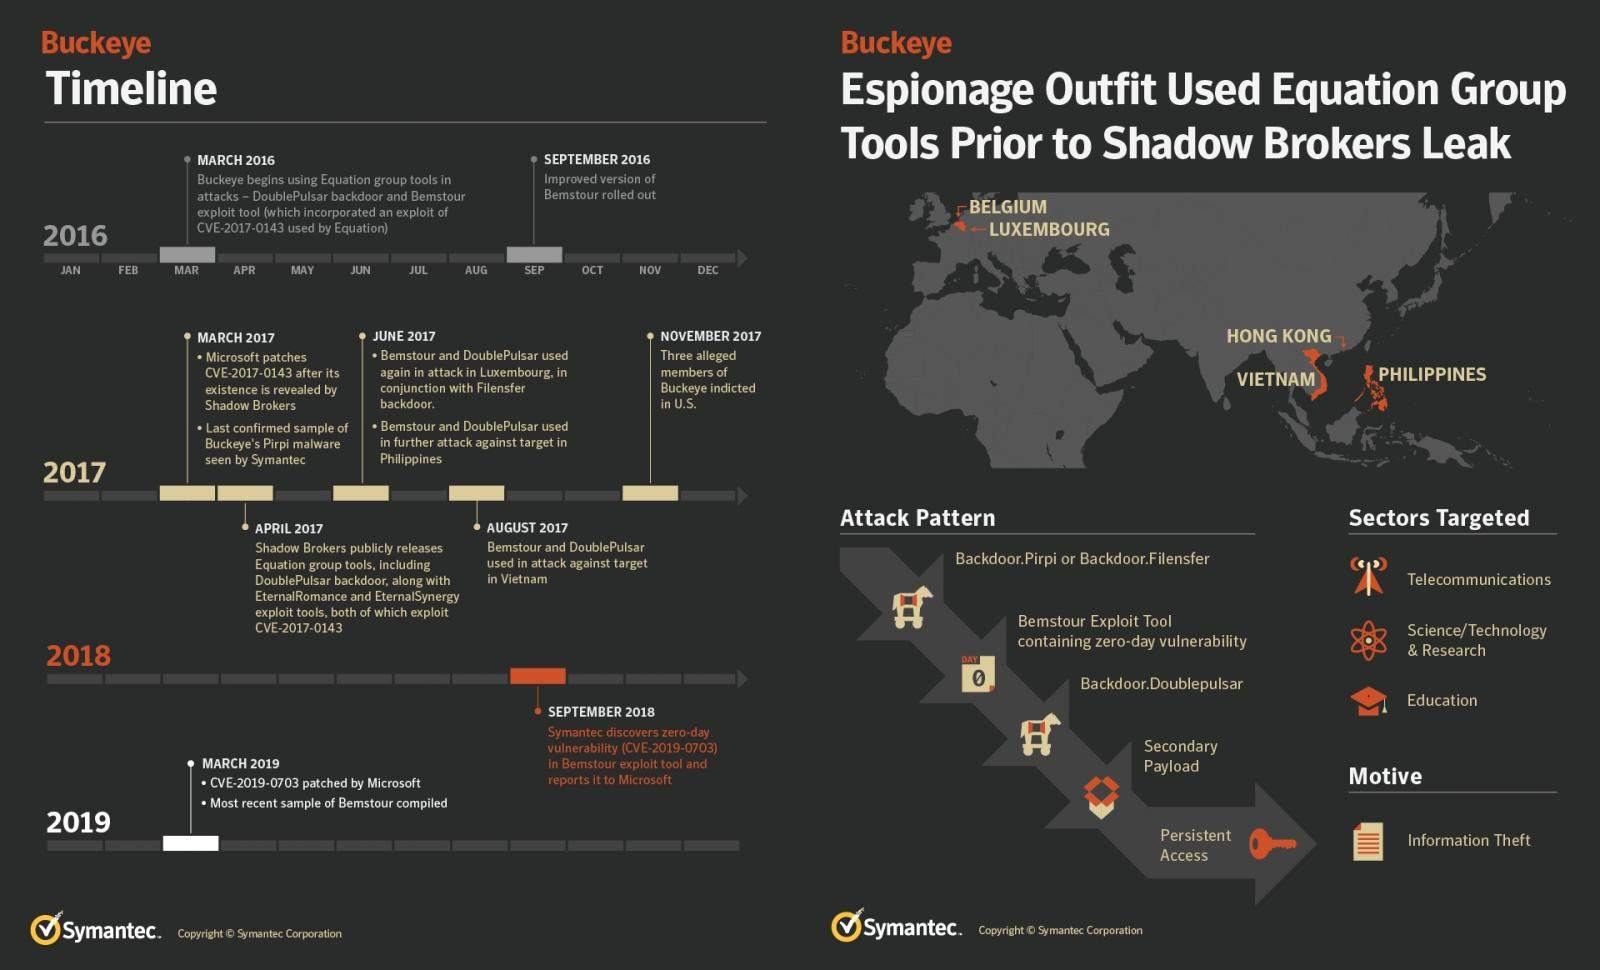 NSA Hacking Tools Used by Chinese Hackers One Year Before Leak